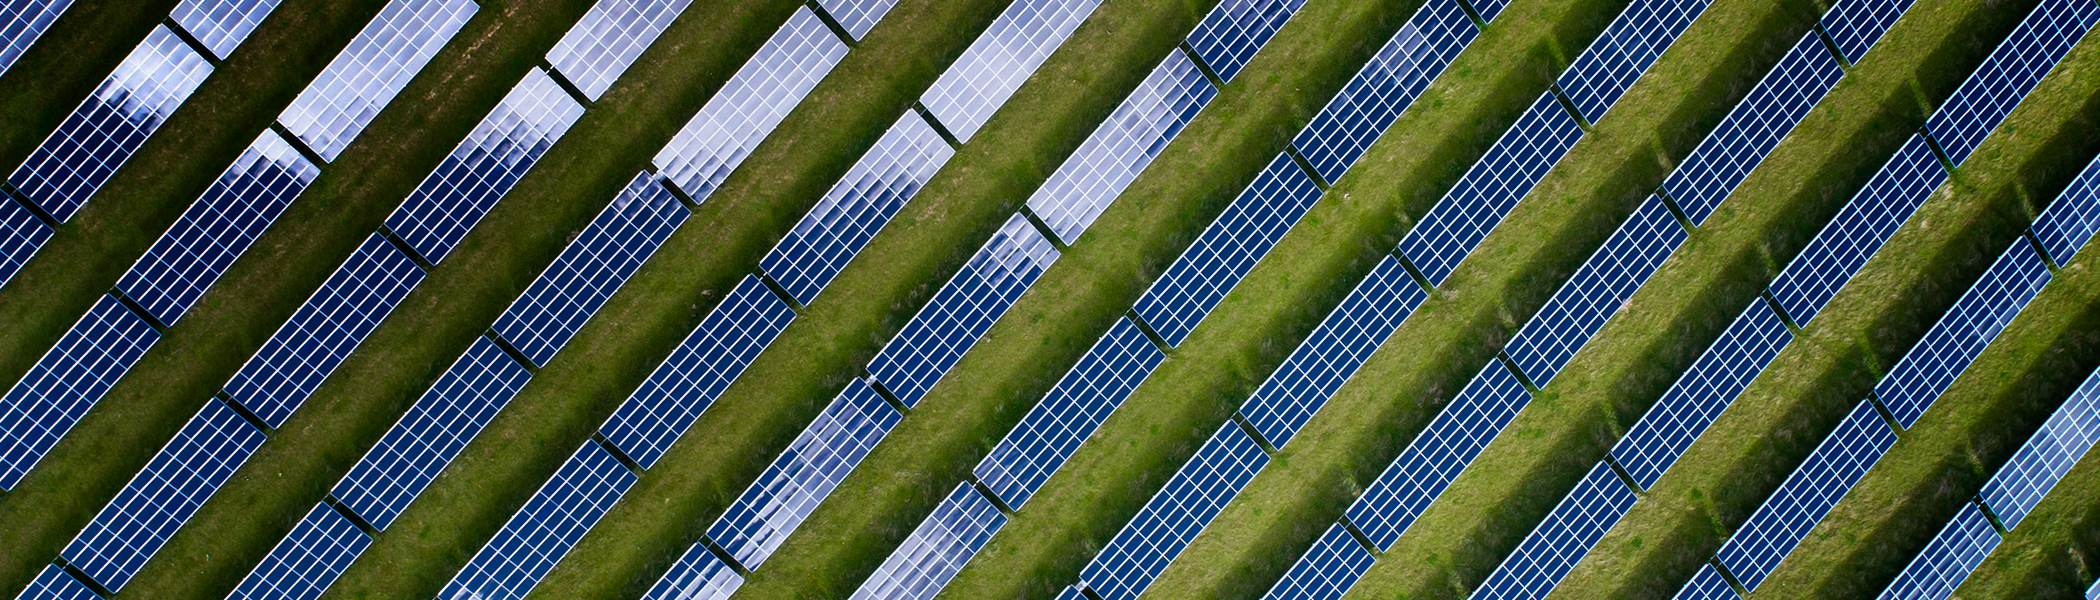 Solar panels viewed from above